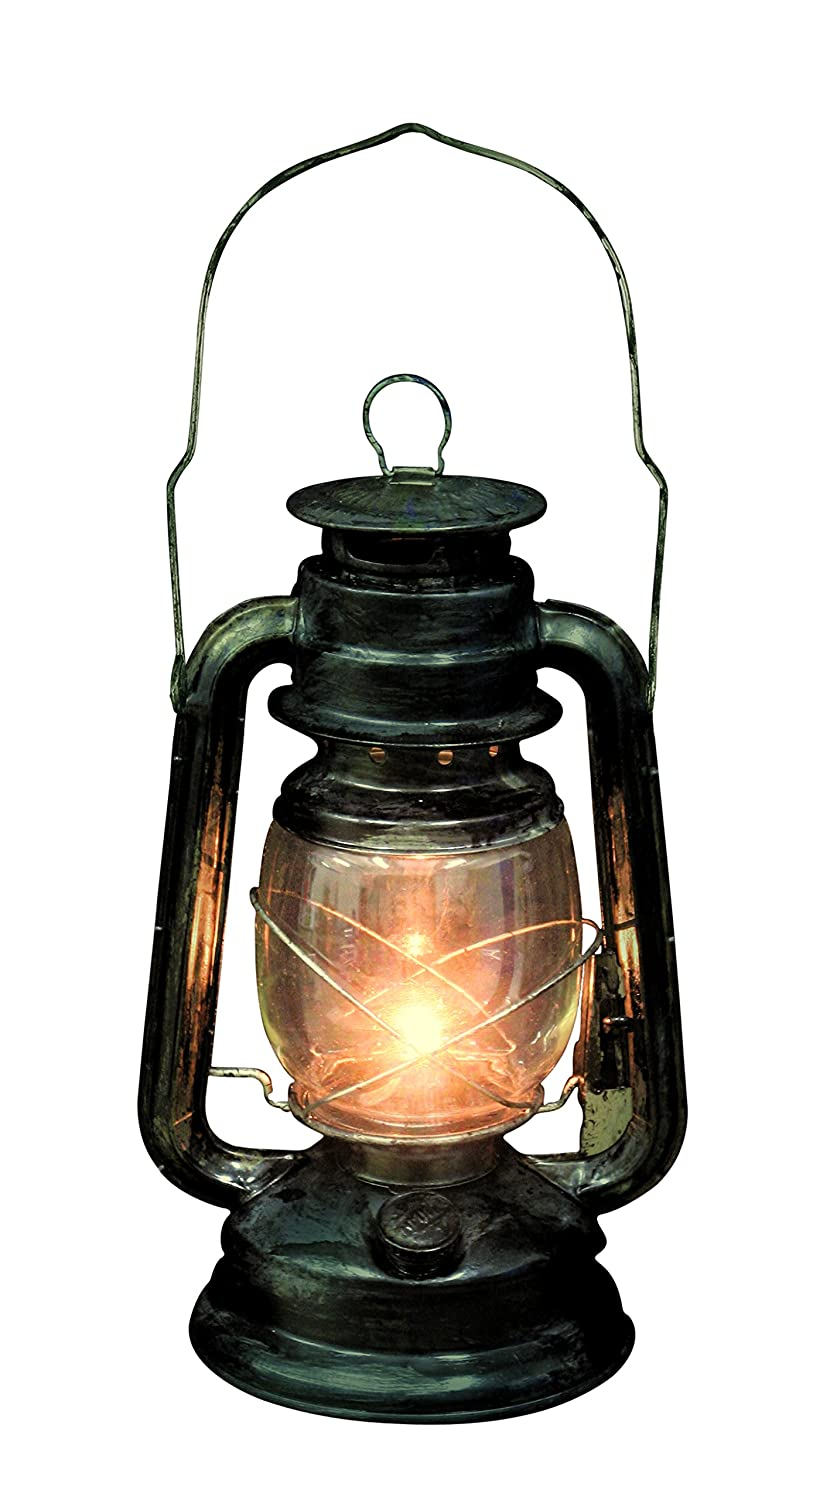 Seasons Rustic Old Fashioned Light Up Lantern